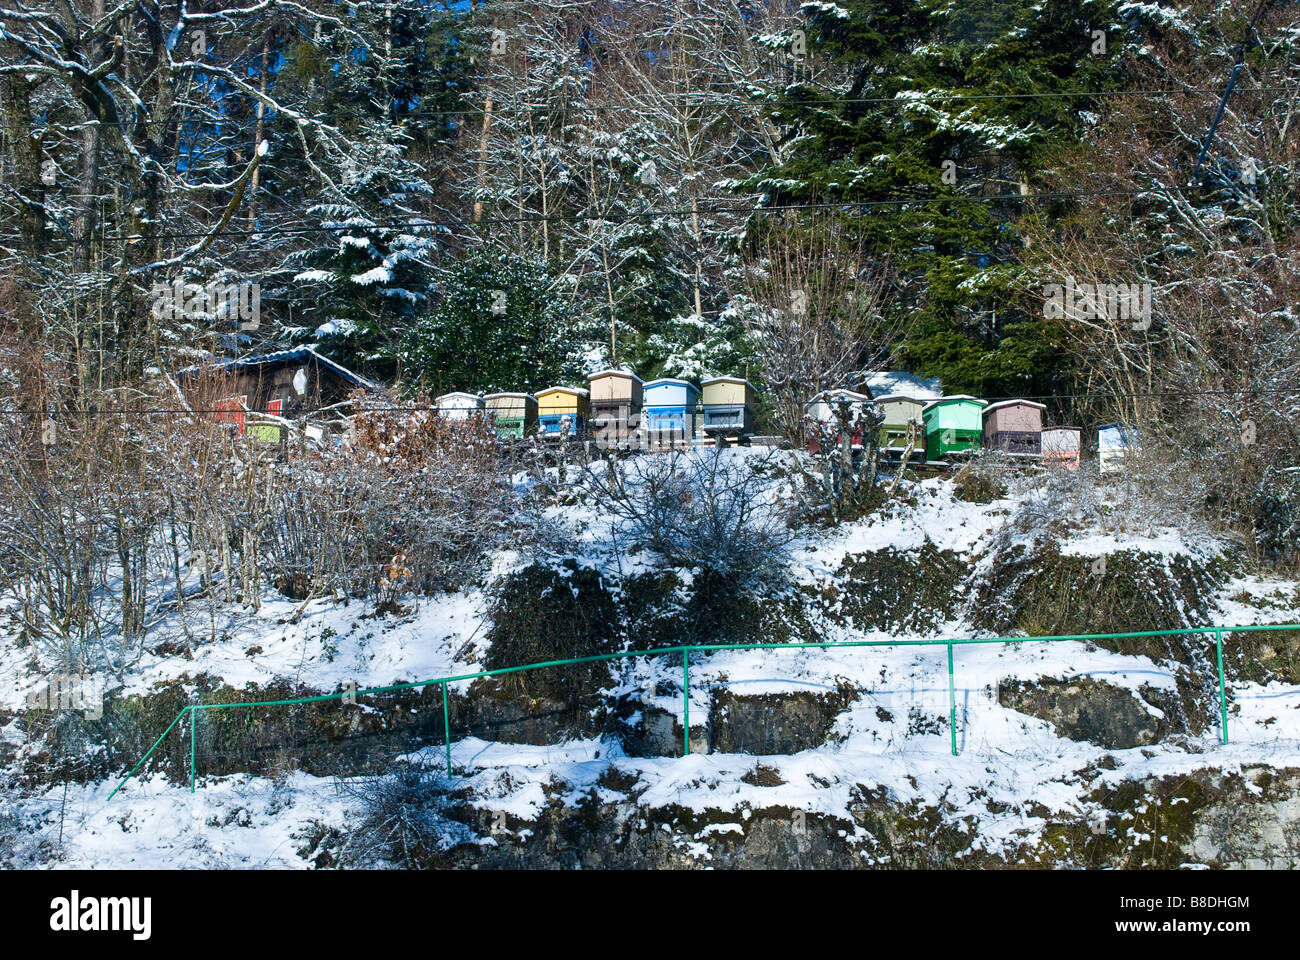 Brightly colored beehives covered with snow.  Switzerland. Charles Lupica - Stock Image